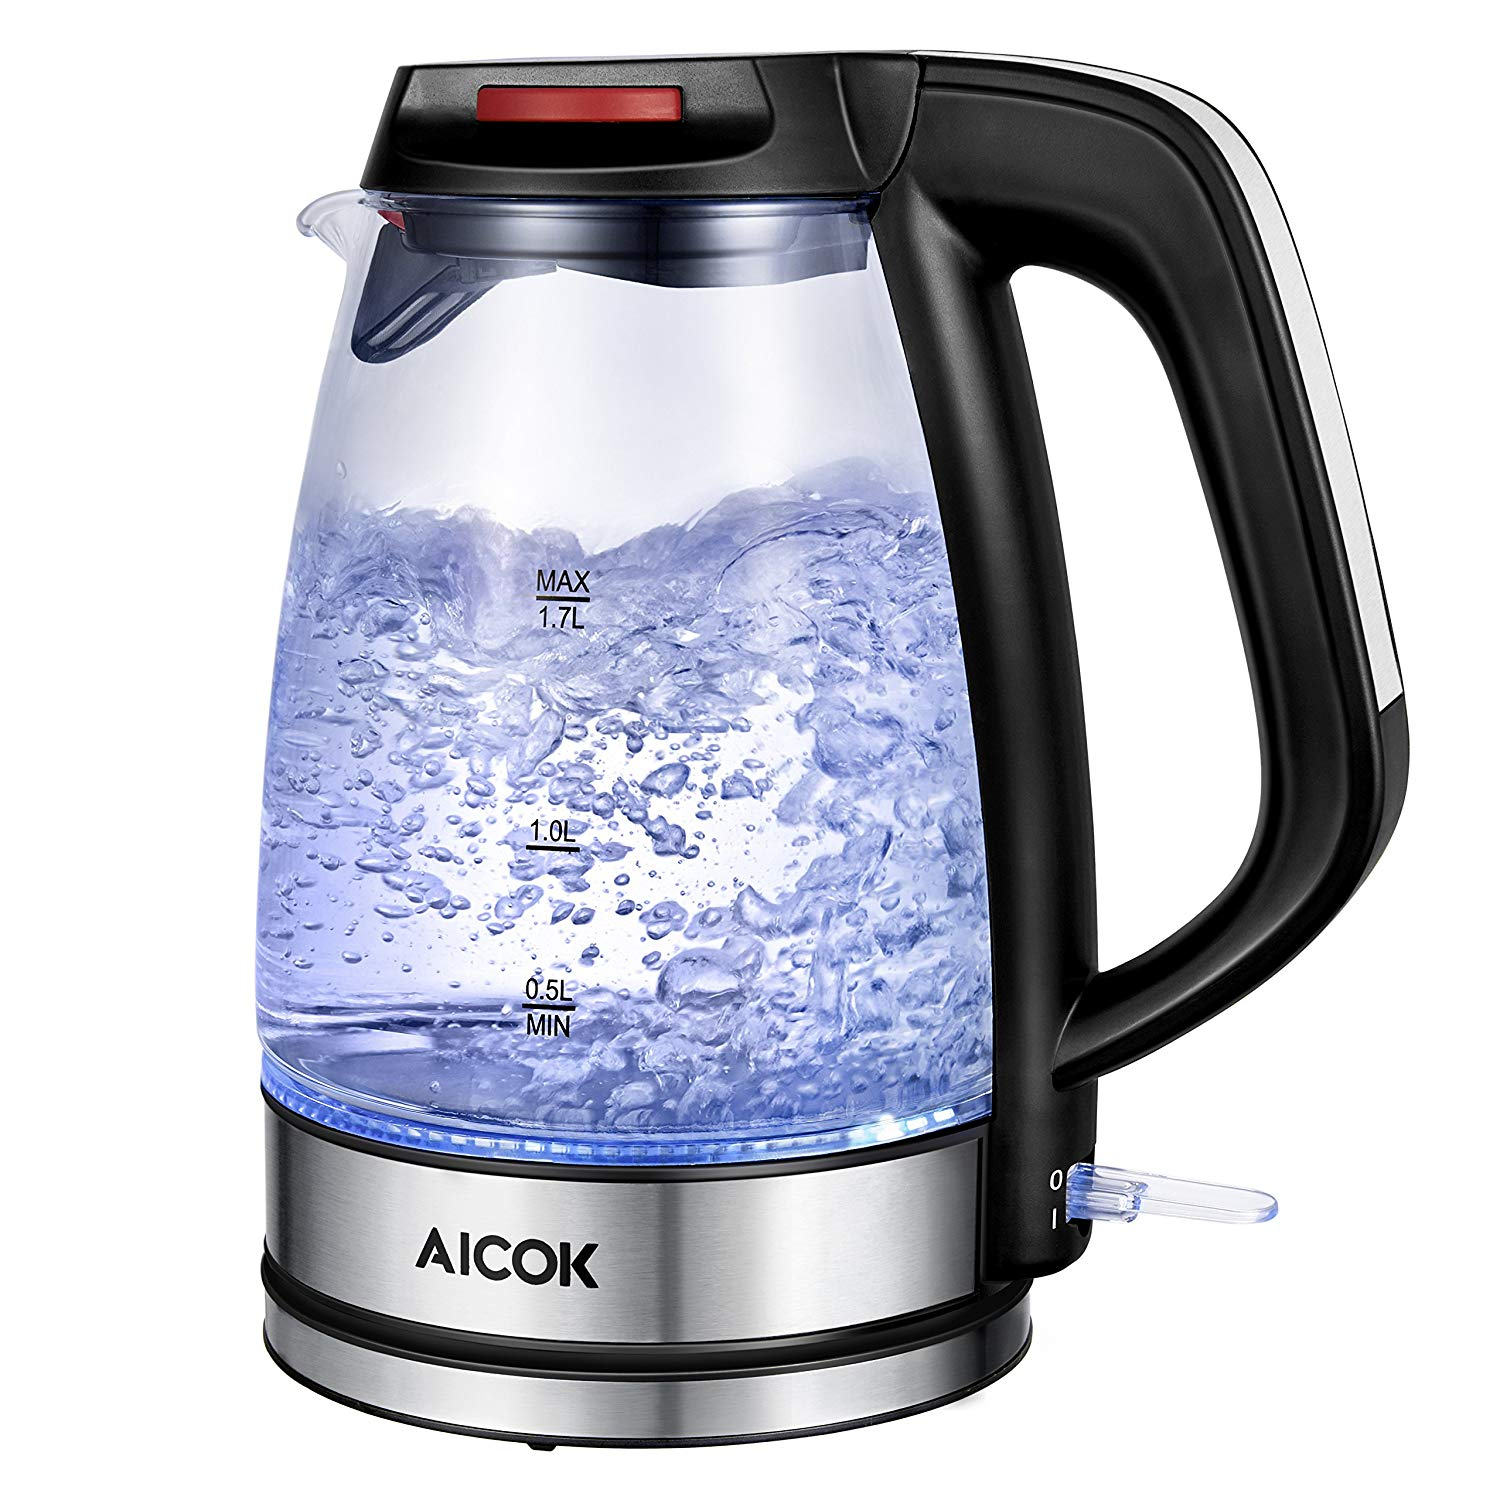 AICOK Electric Kettle Glass Kettle Electric Fast Boil,1.7L Tea Kettle